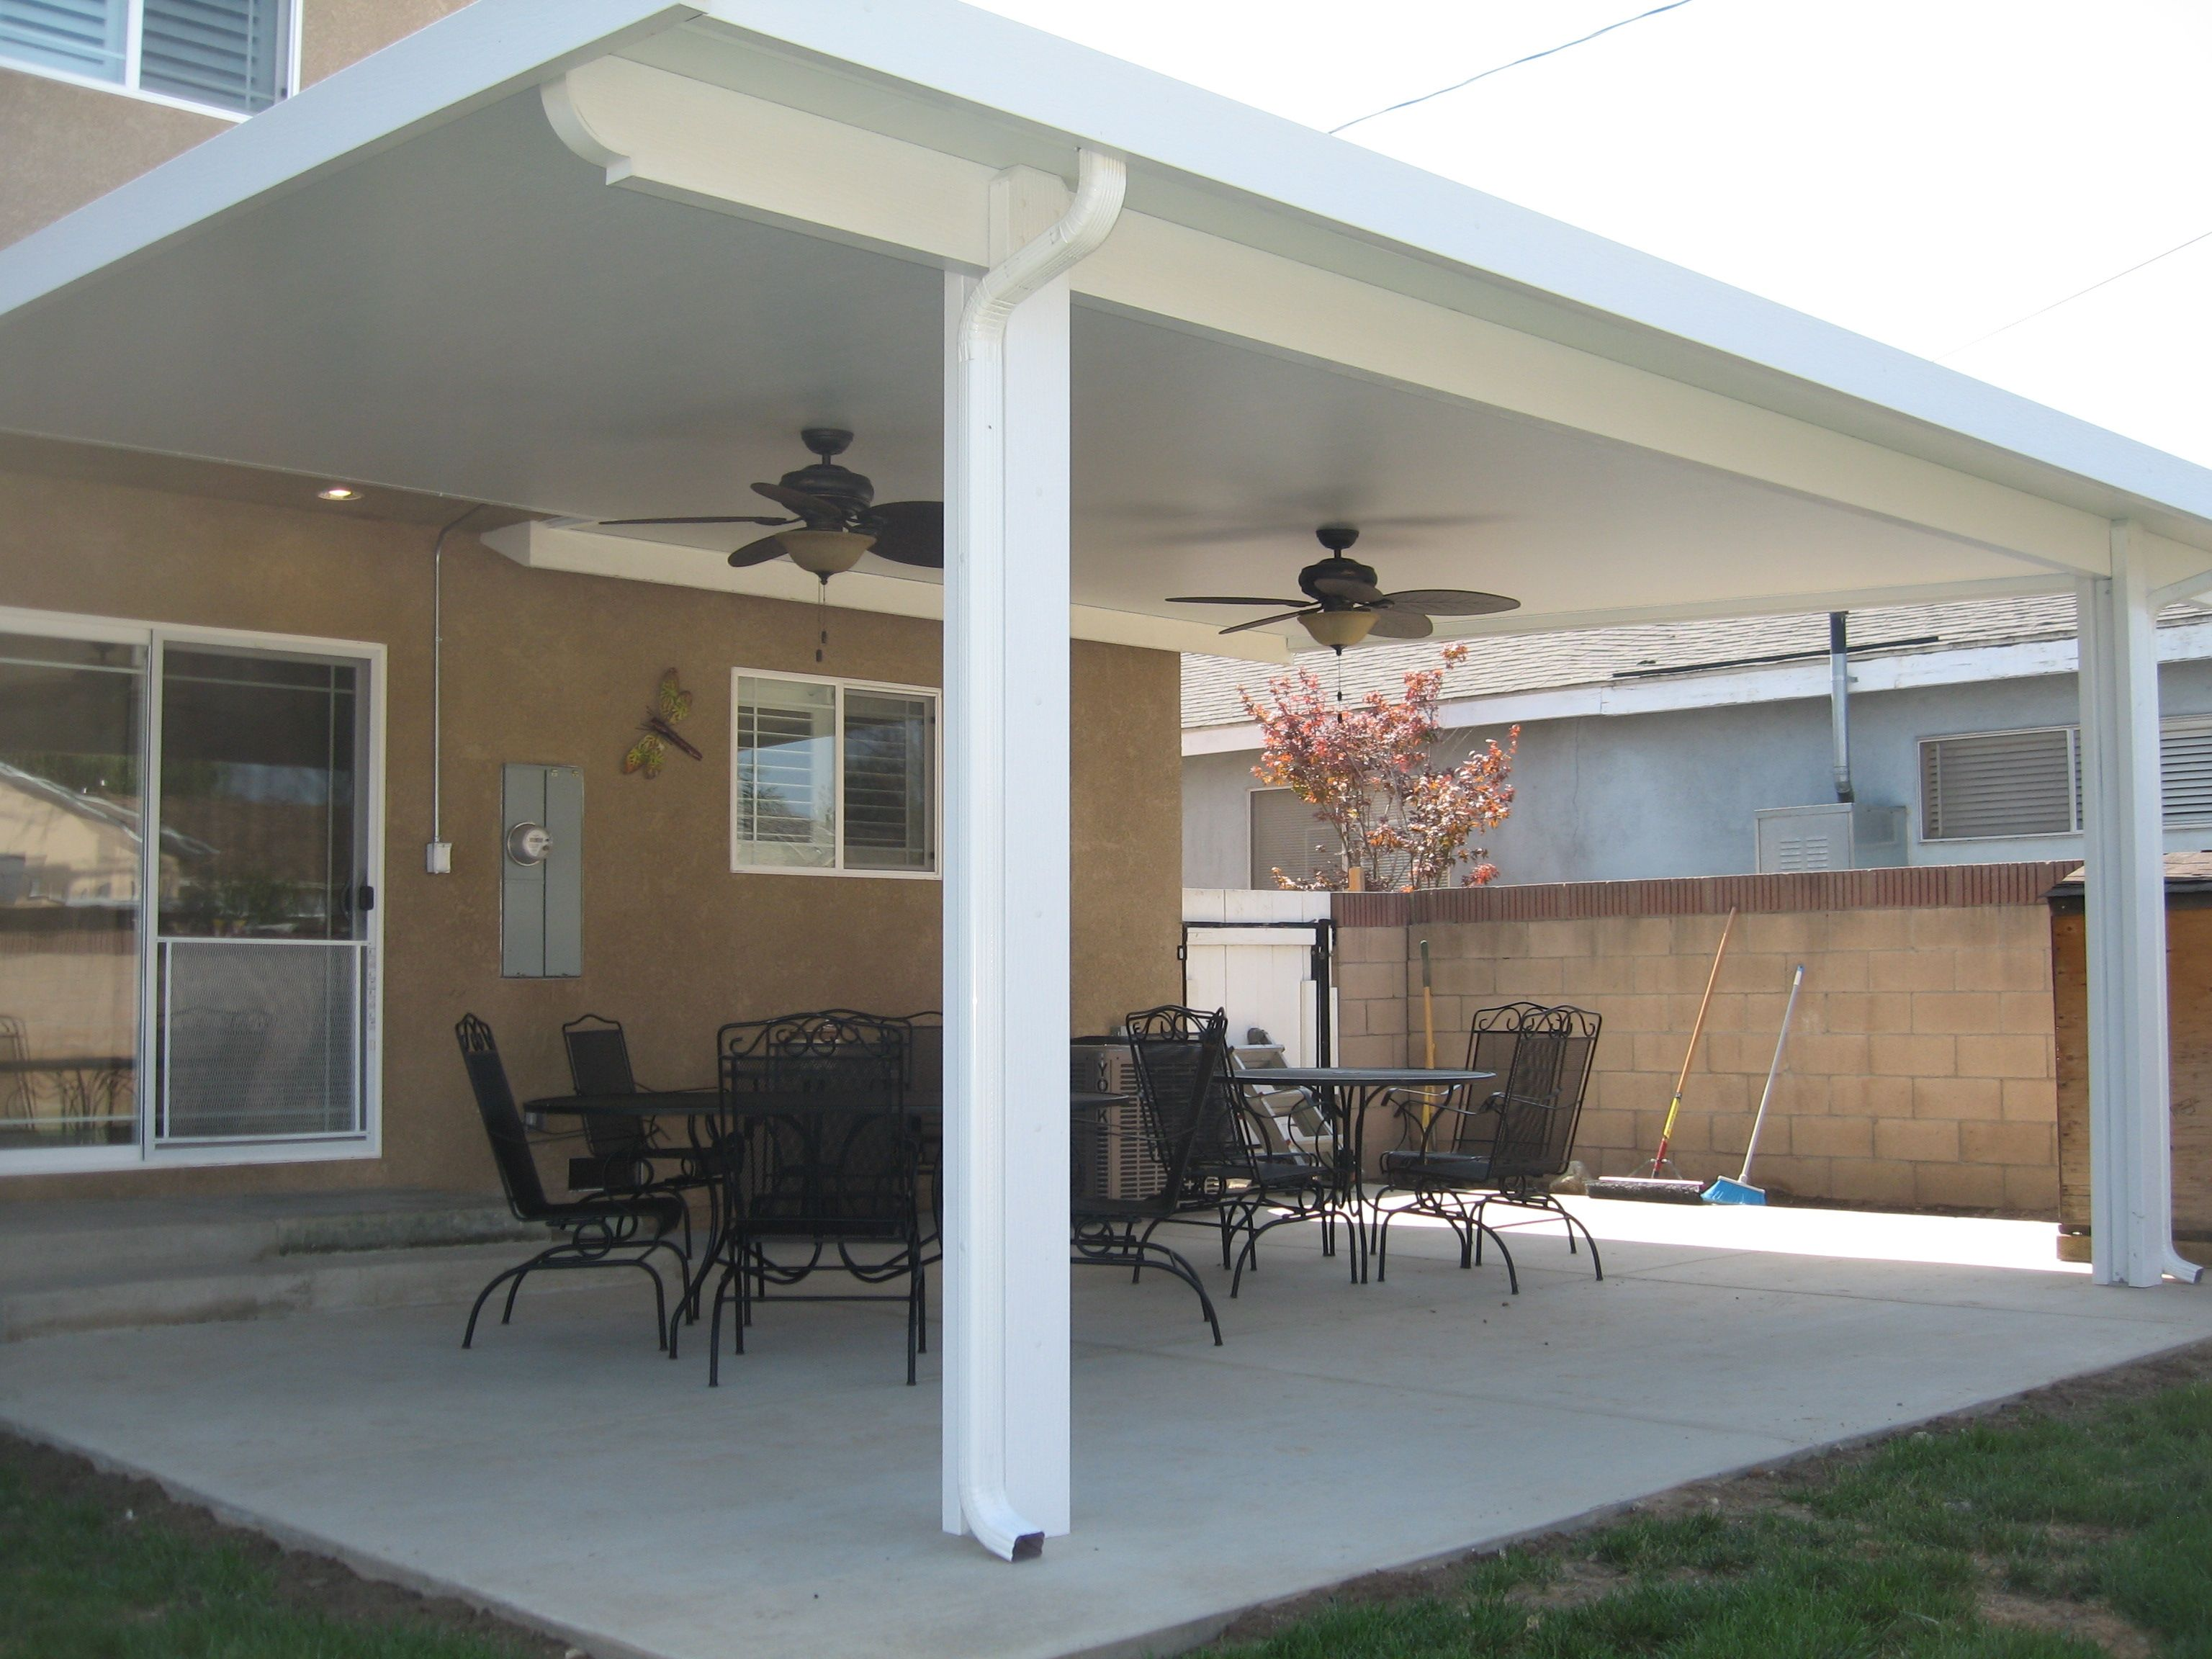 Insulated Aluminum Patio Covers Patio Decor